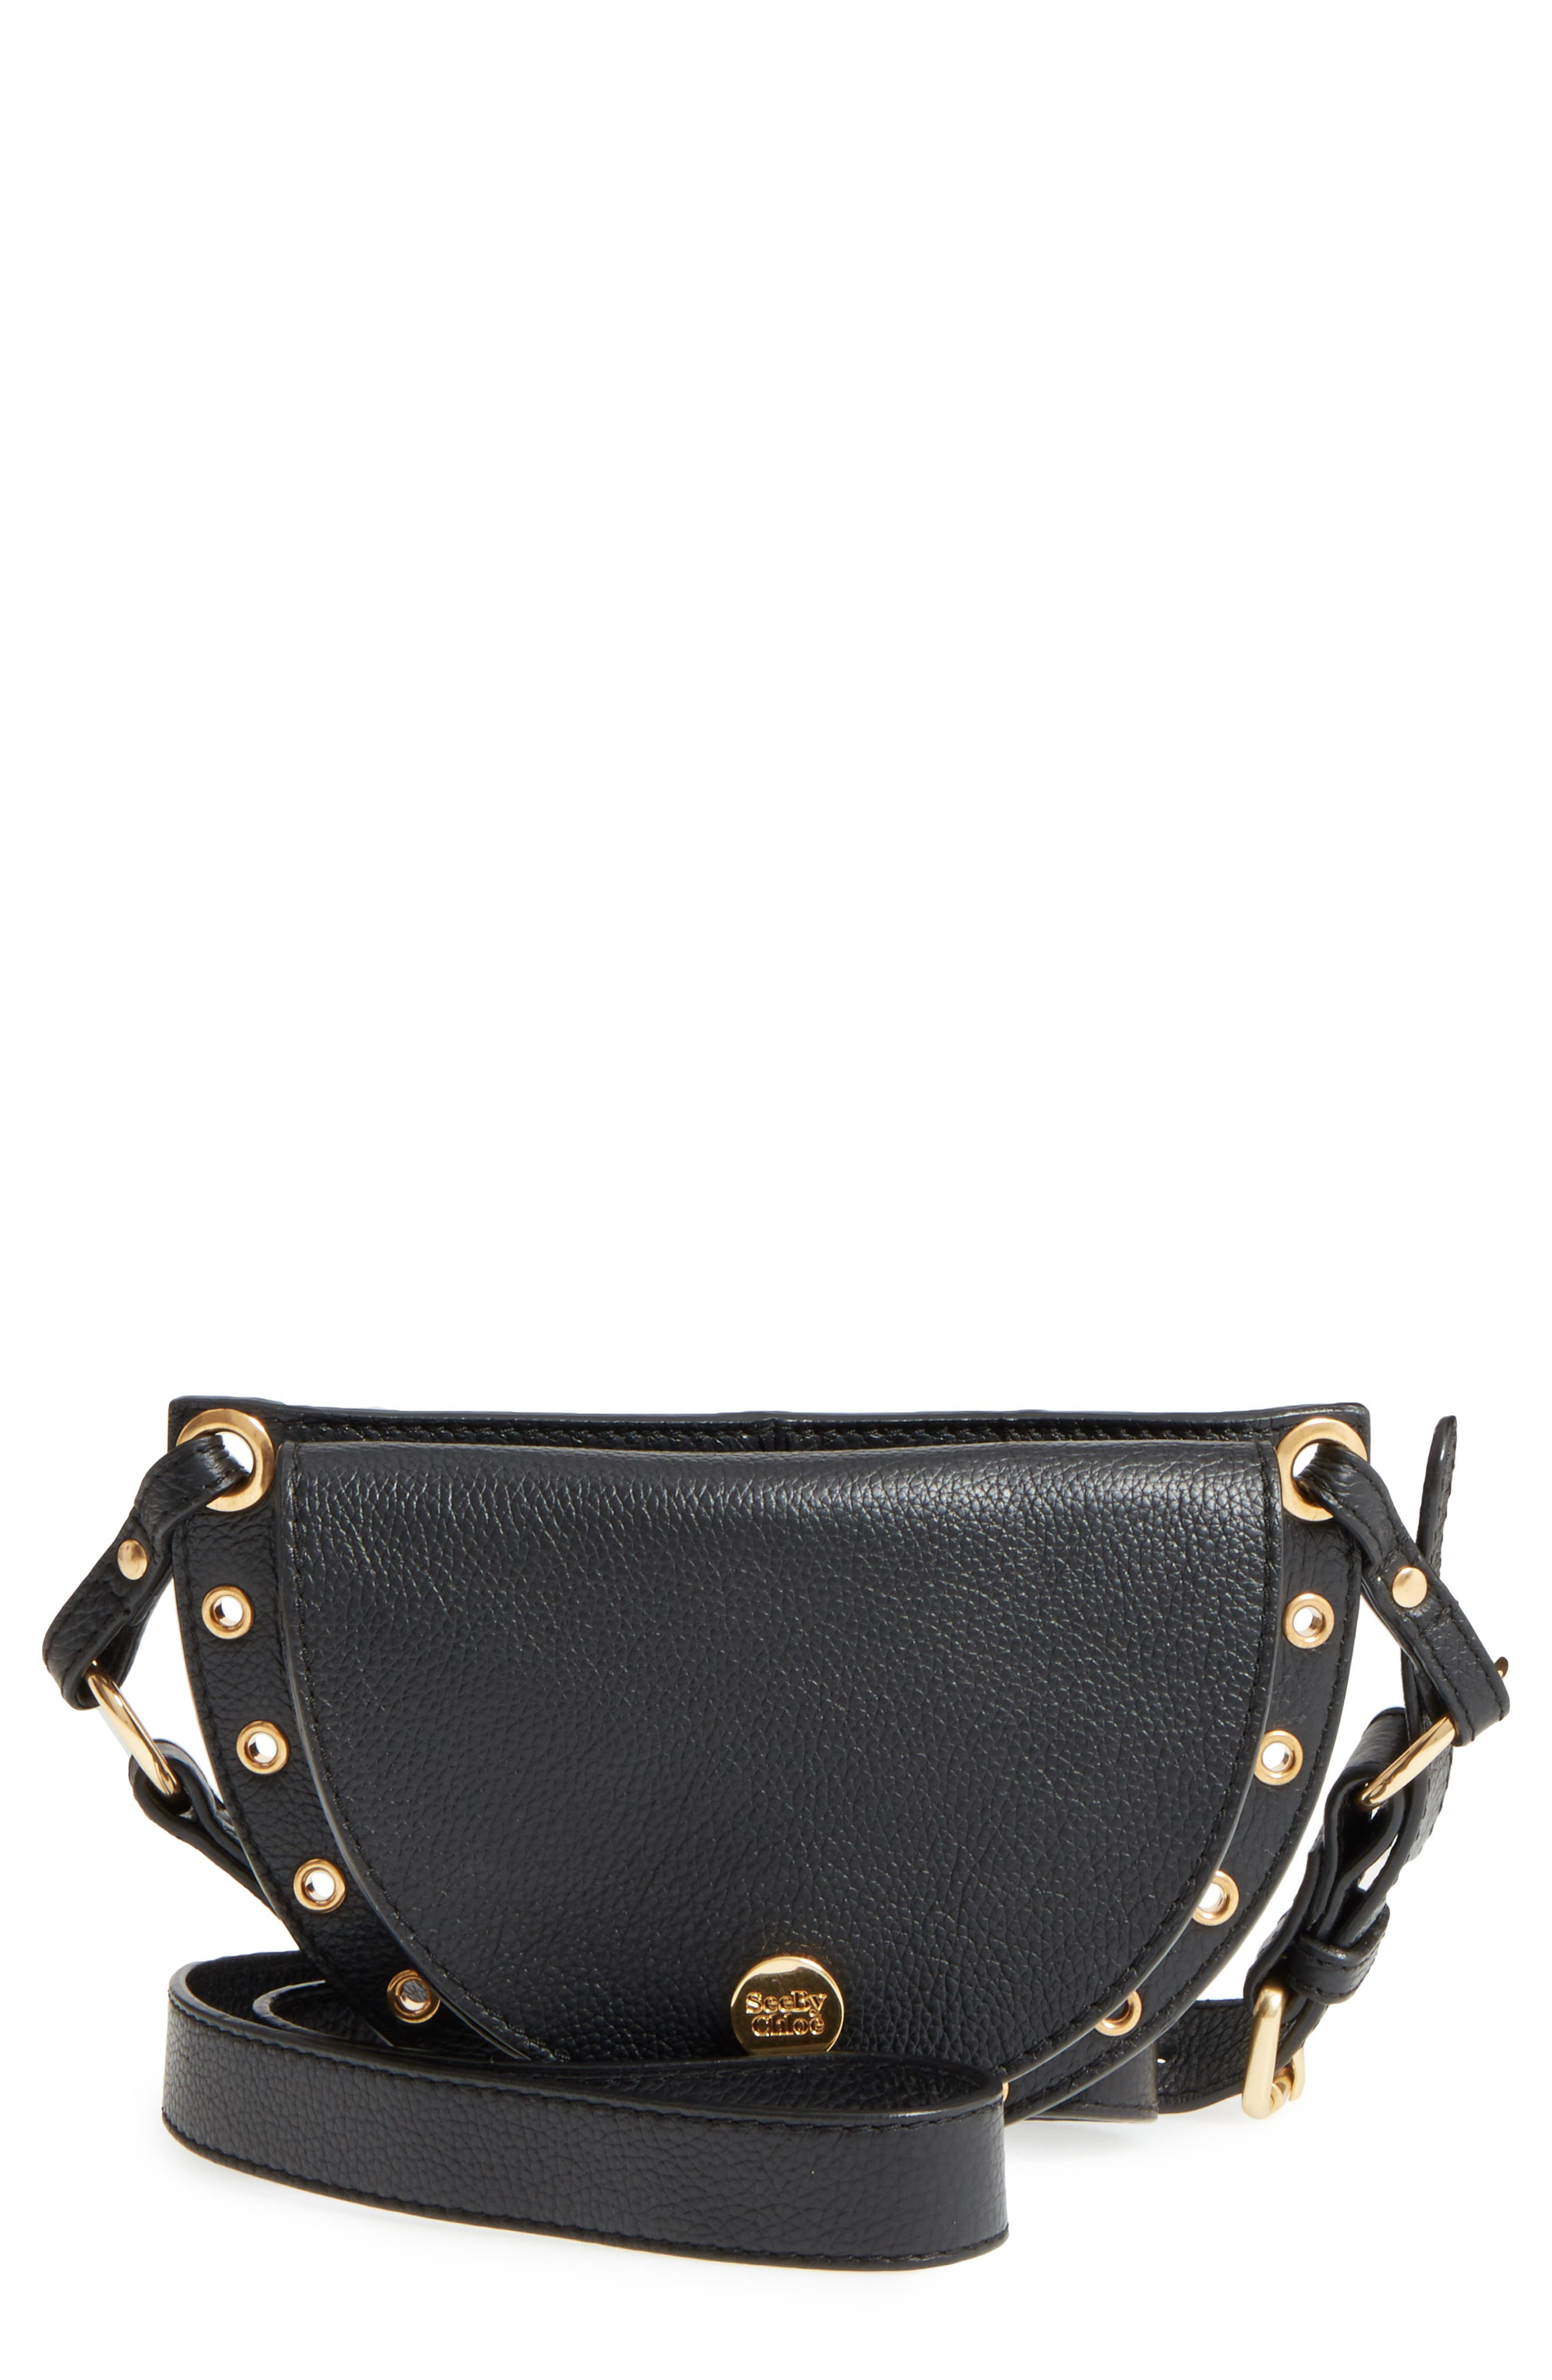 See by Chloé Kriss Grommet Leather Fanny Pack